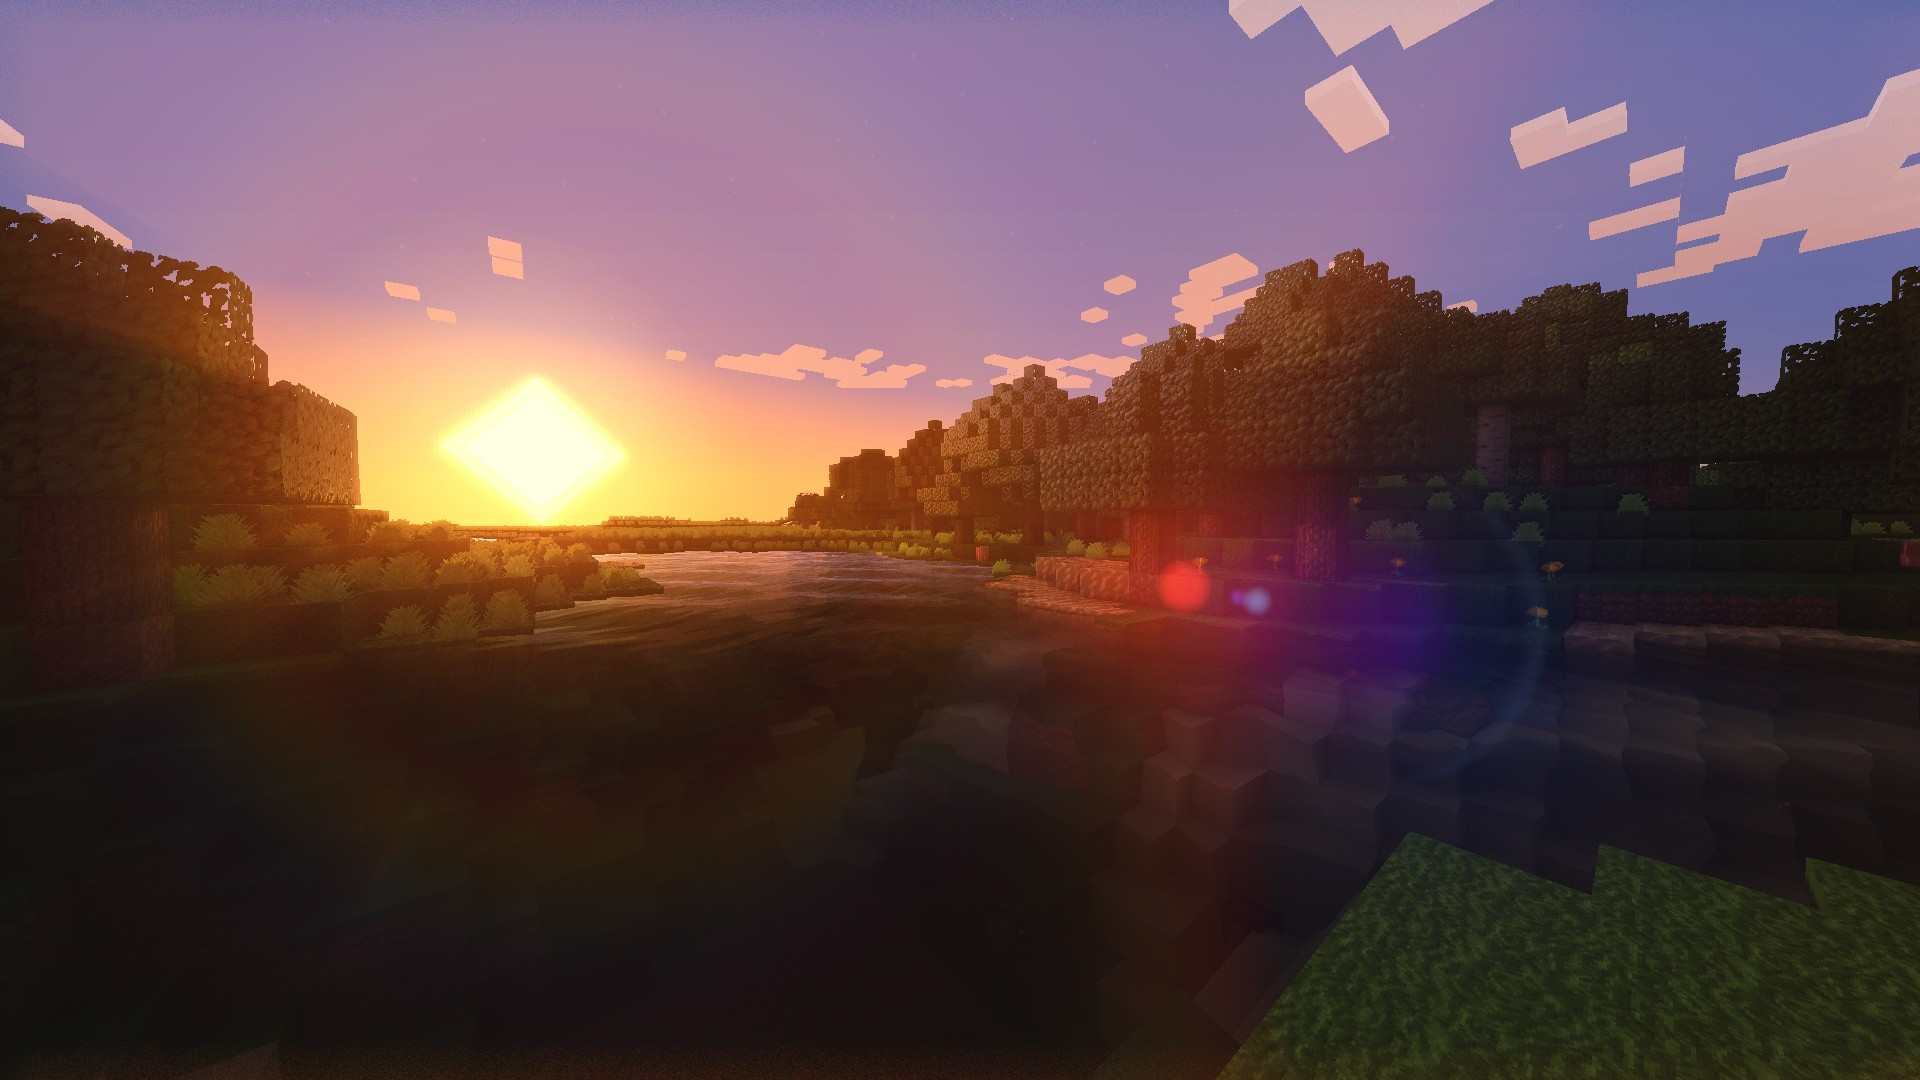 Download Minecraft Shaders Sunset Wallpaper 255720 1920x1080 46